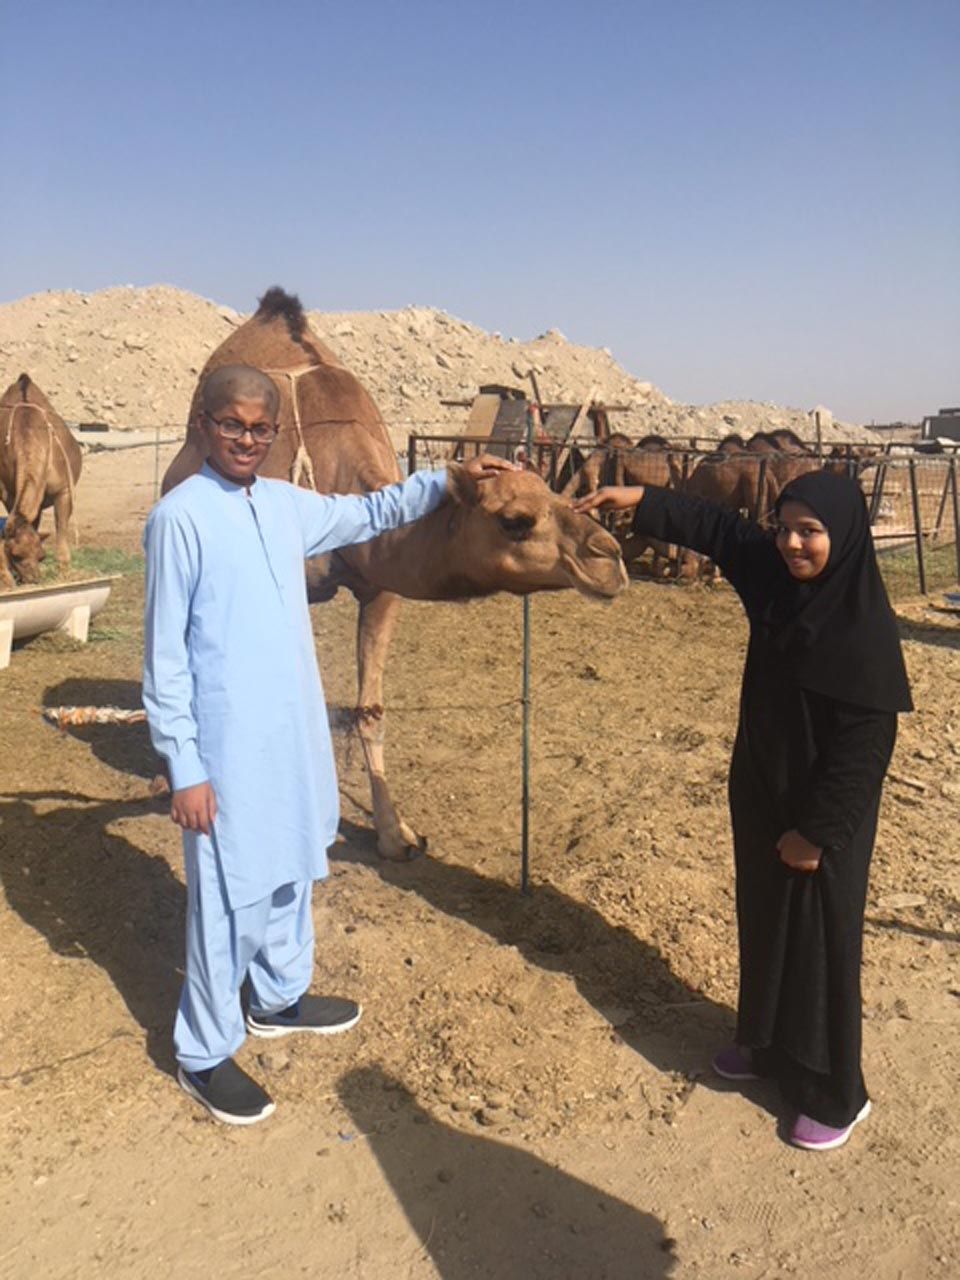 Habib and Zoya enjoying with the baby camel